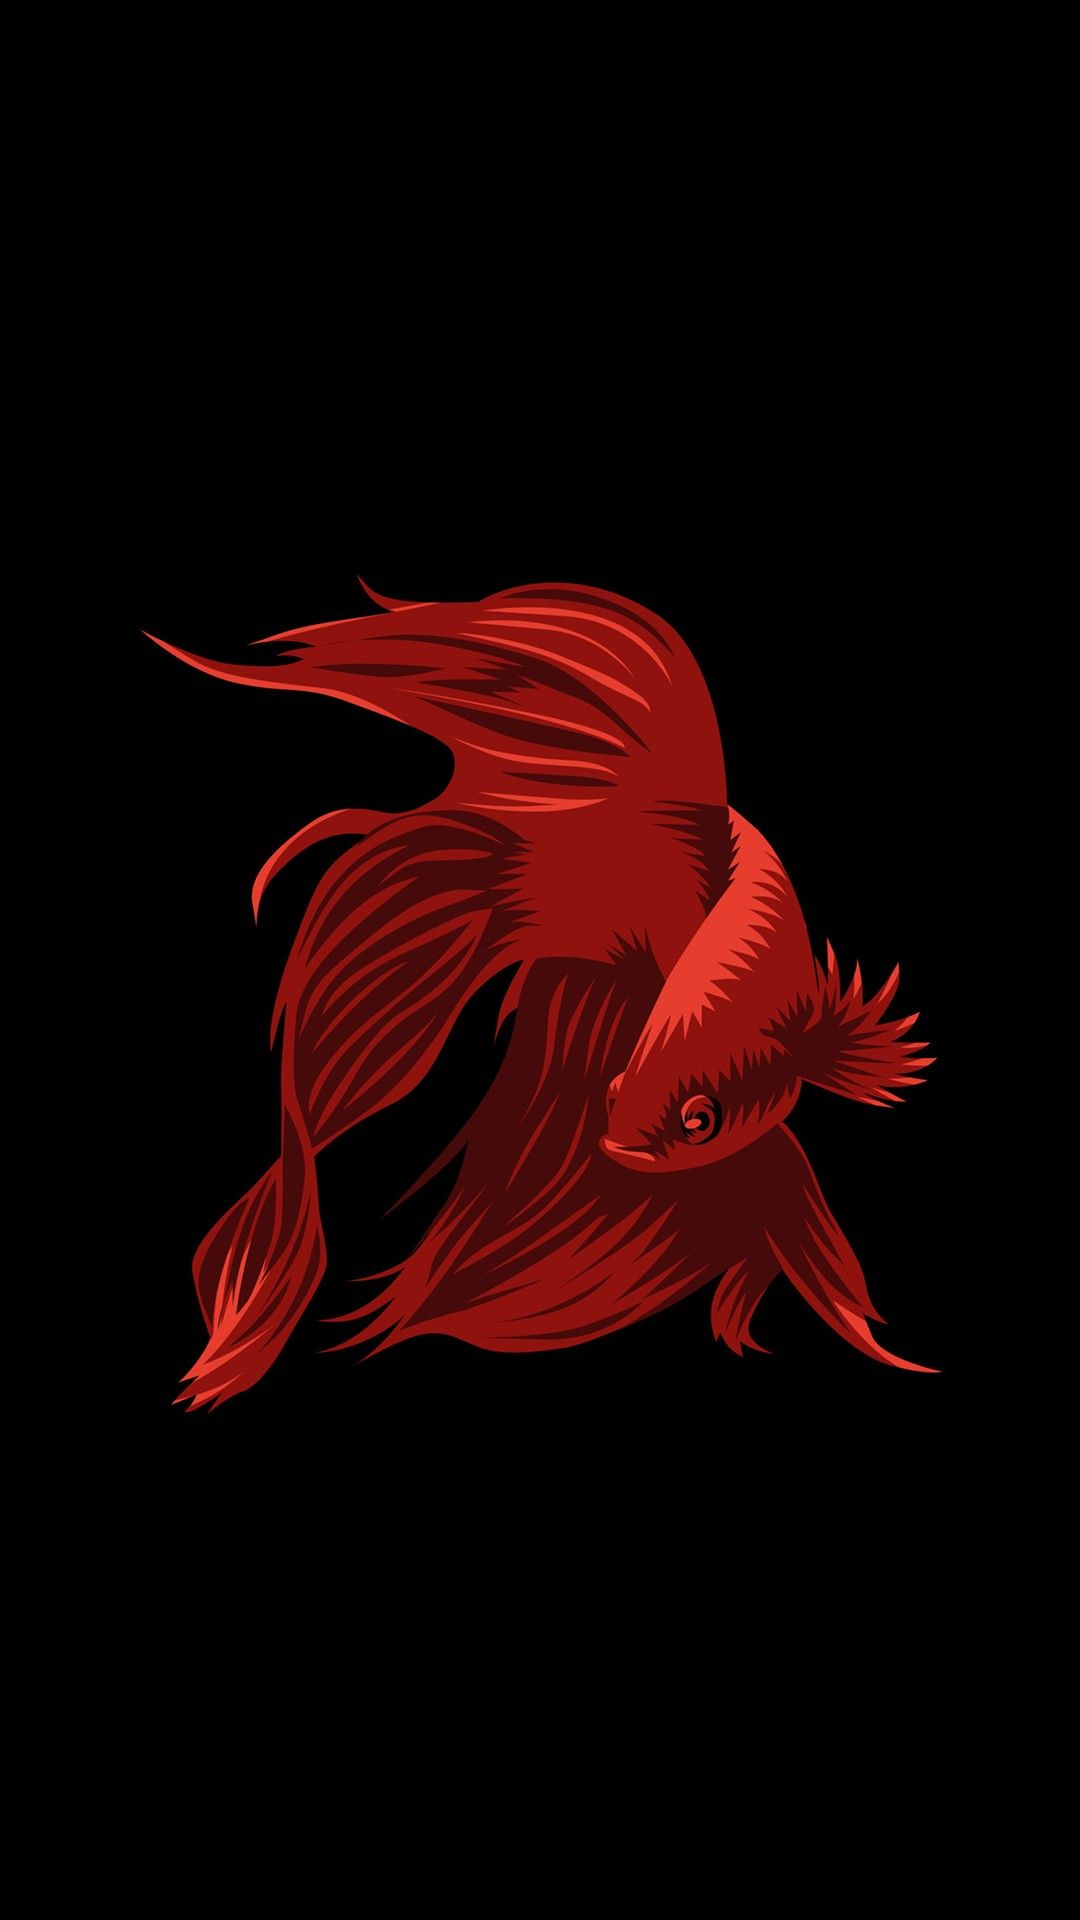 Black Background With Red Fish Profile Wallpaper Star Wars Painting Dark Wallpaper